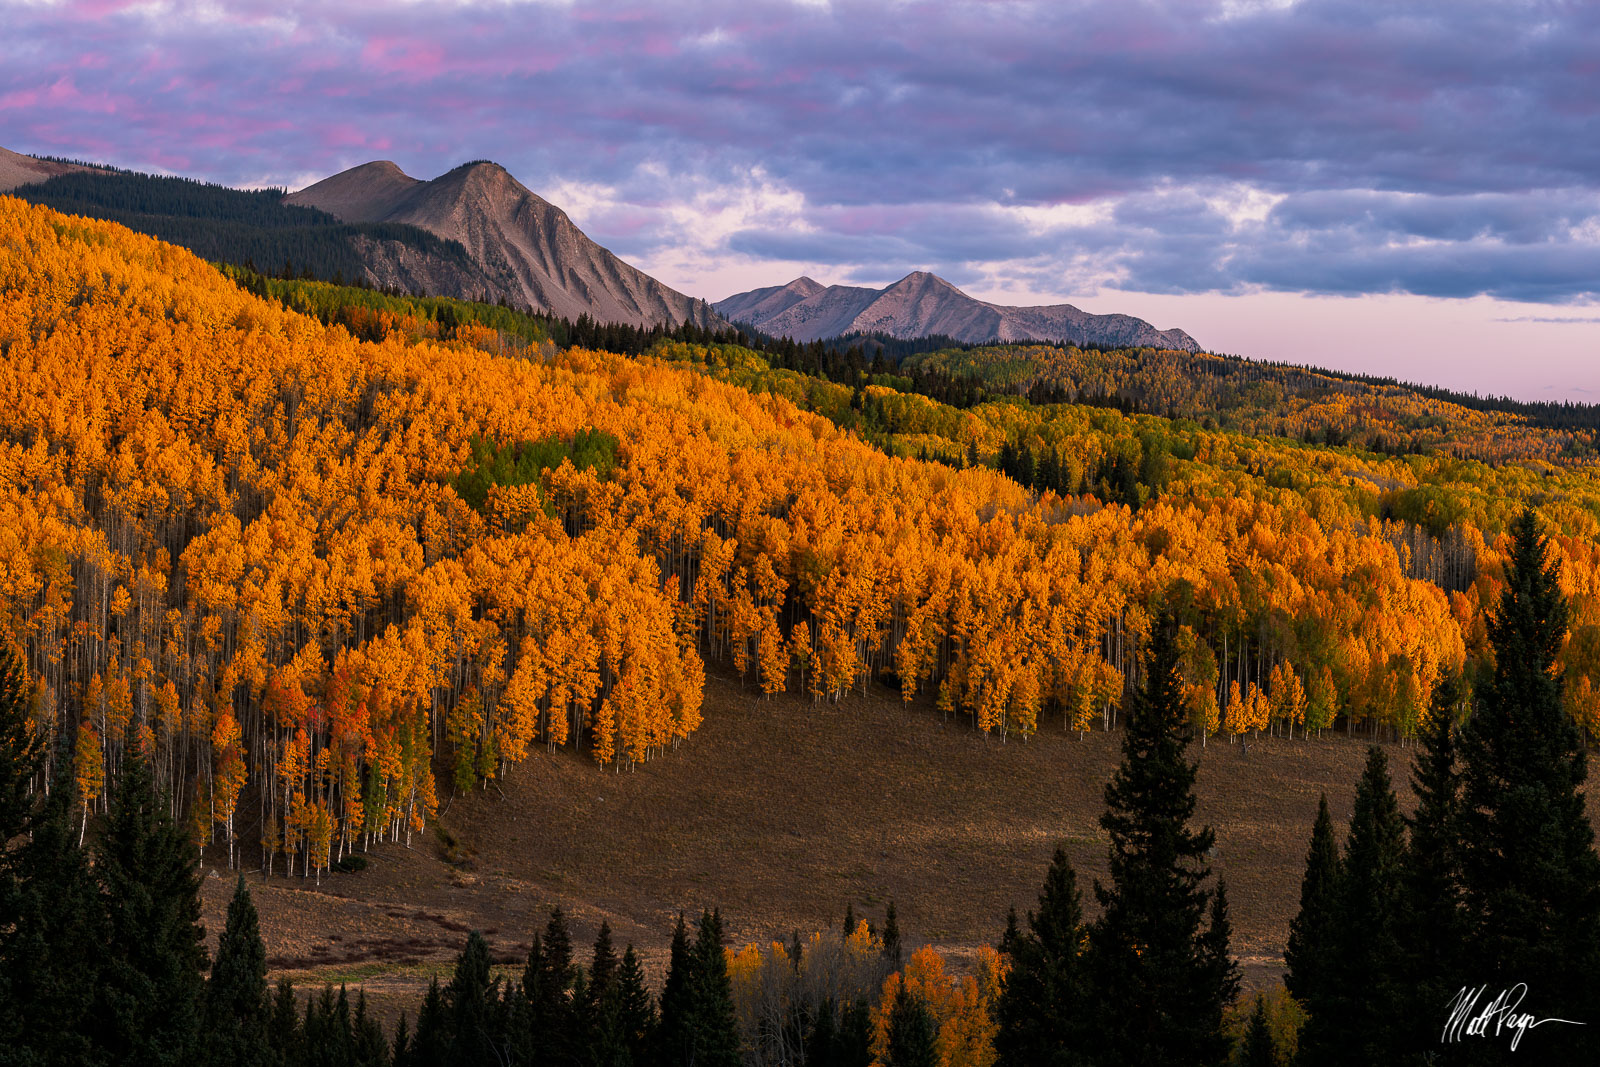 Aspen Trees, Autumn, Colorado, Crested Butte, Fall Colors, Gunnison, Mountains, Ohio Pass, Sunrise, east beckwith mountain, West Elk Mountains, photo